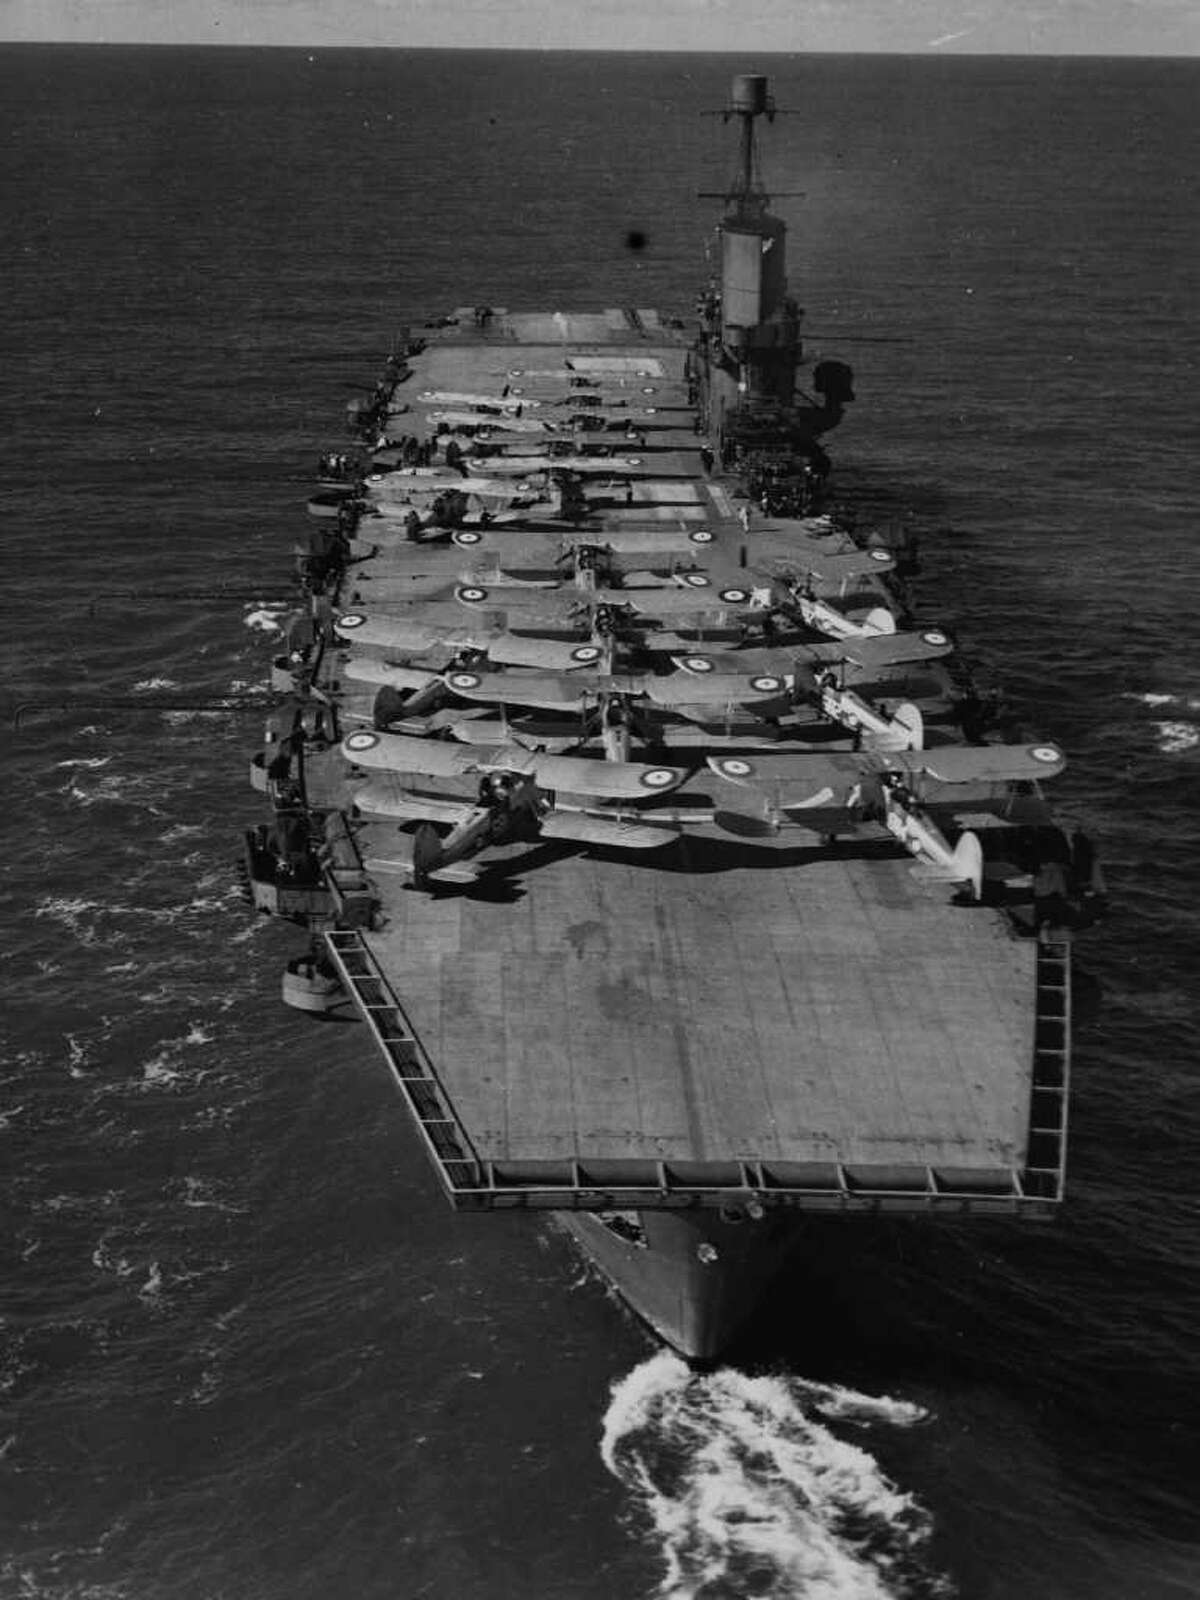 Airplanes prepare for take off from the flight deck of second HMS Ark Royal, circa 1935. Related story